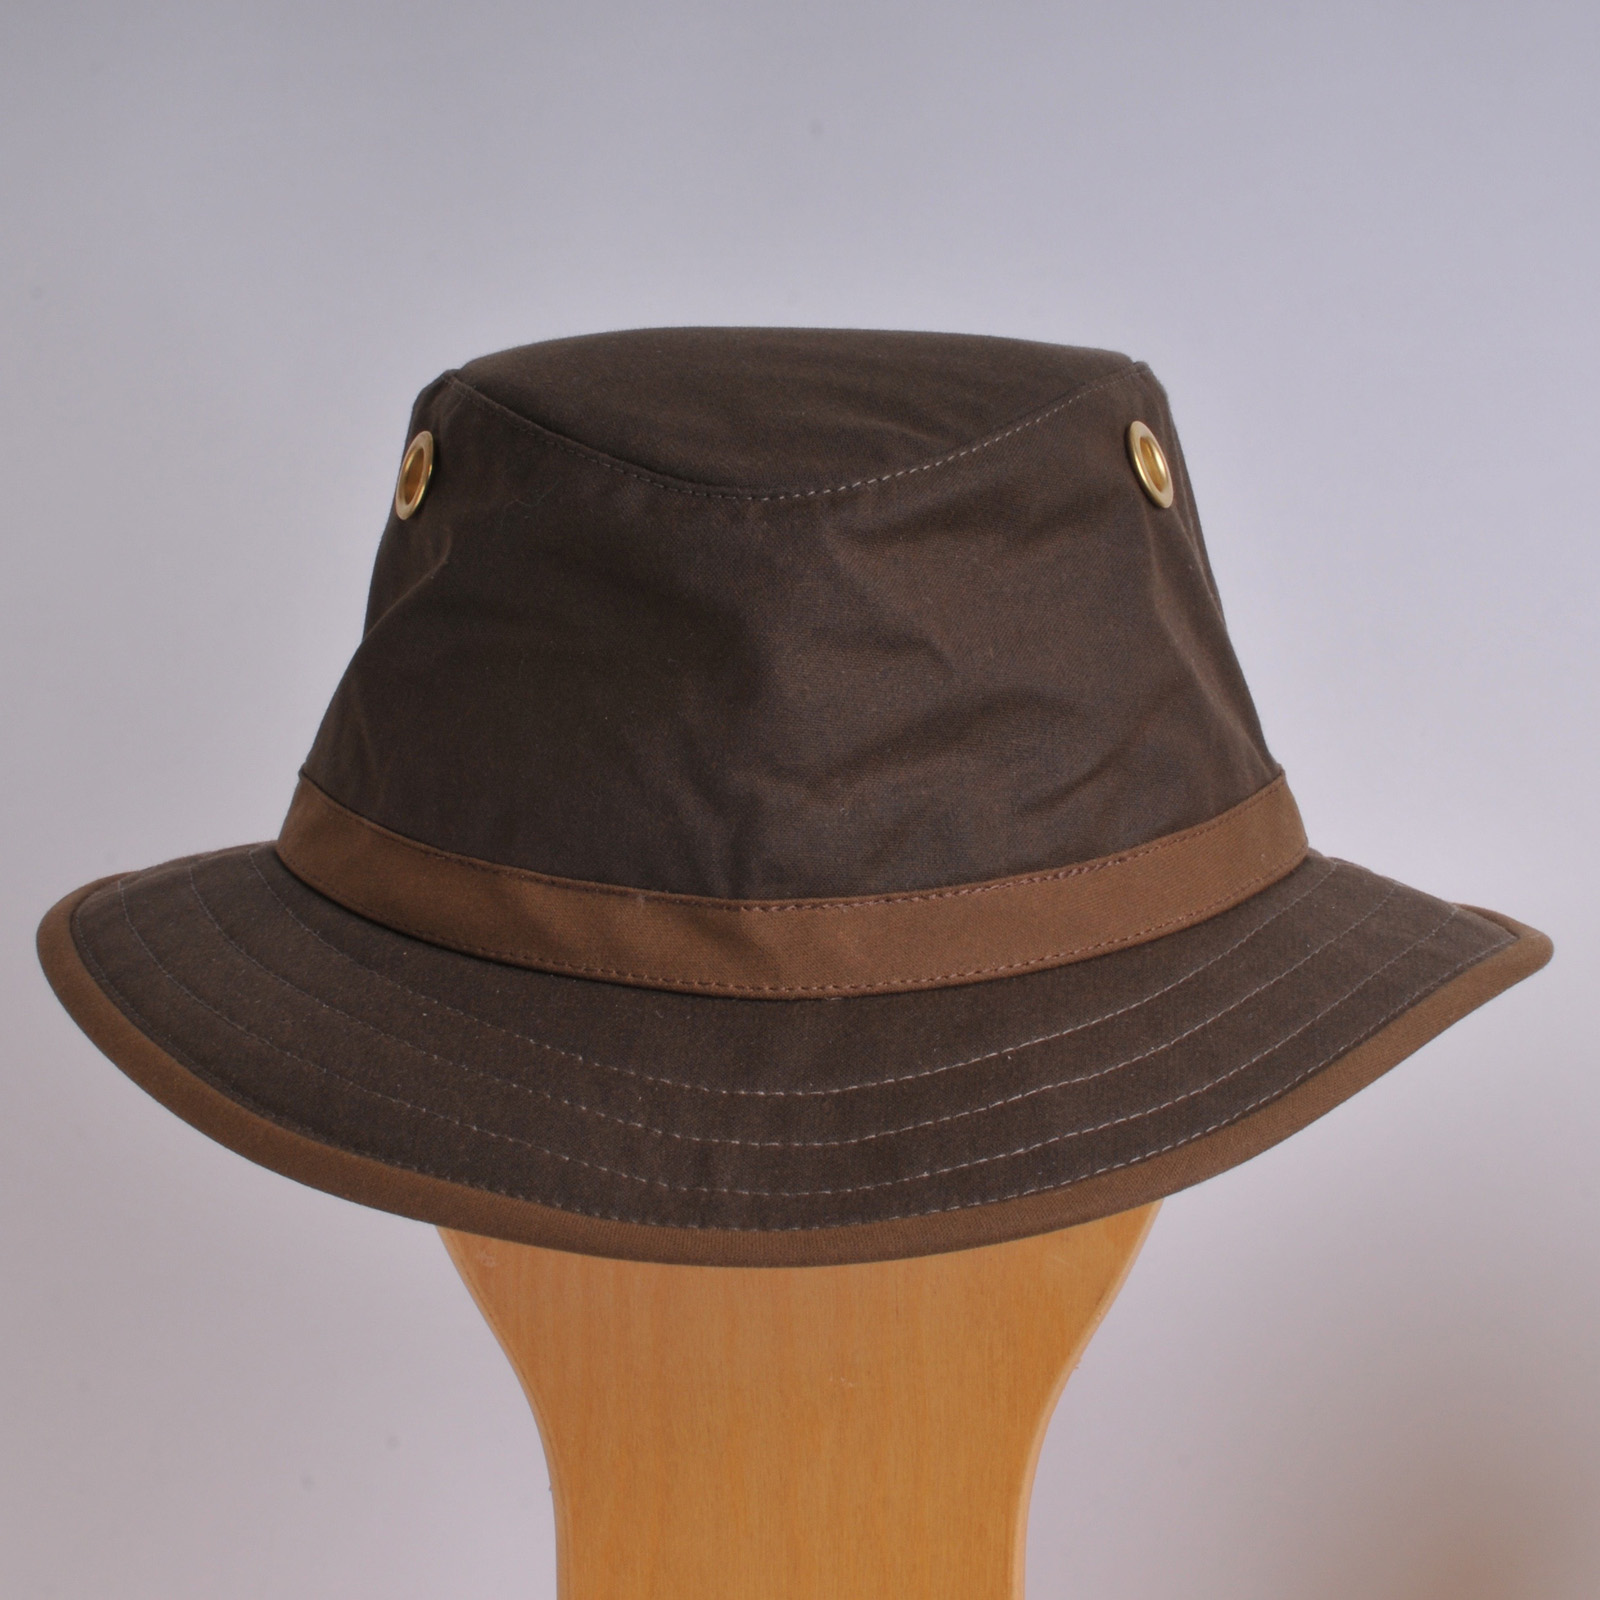 Tilley Hats Waxed Cotton Tilley Hat Twc7